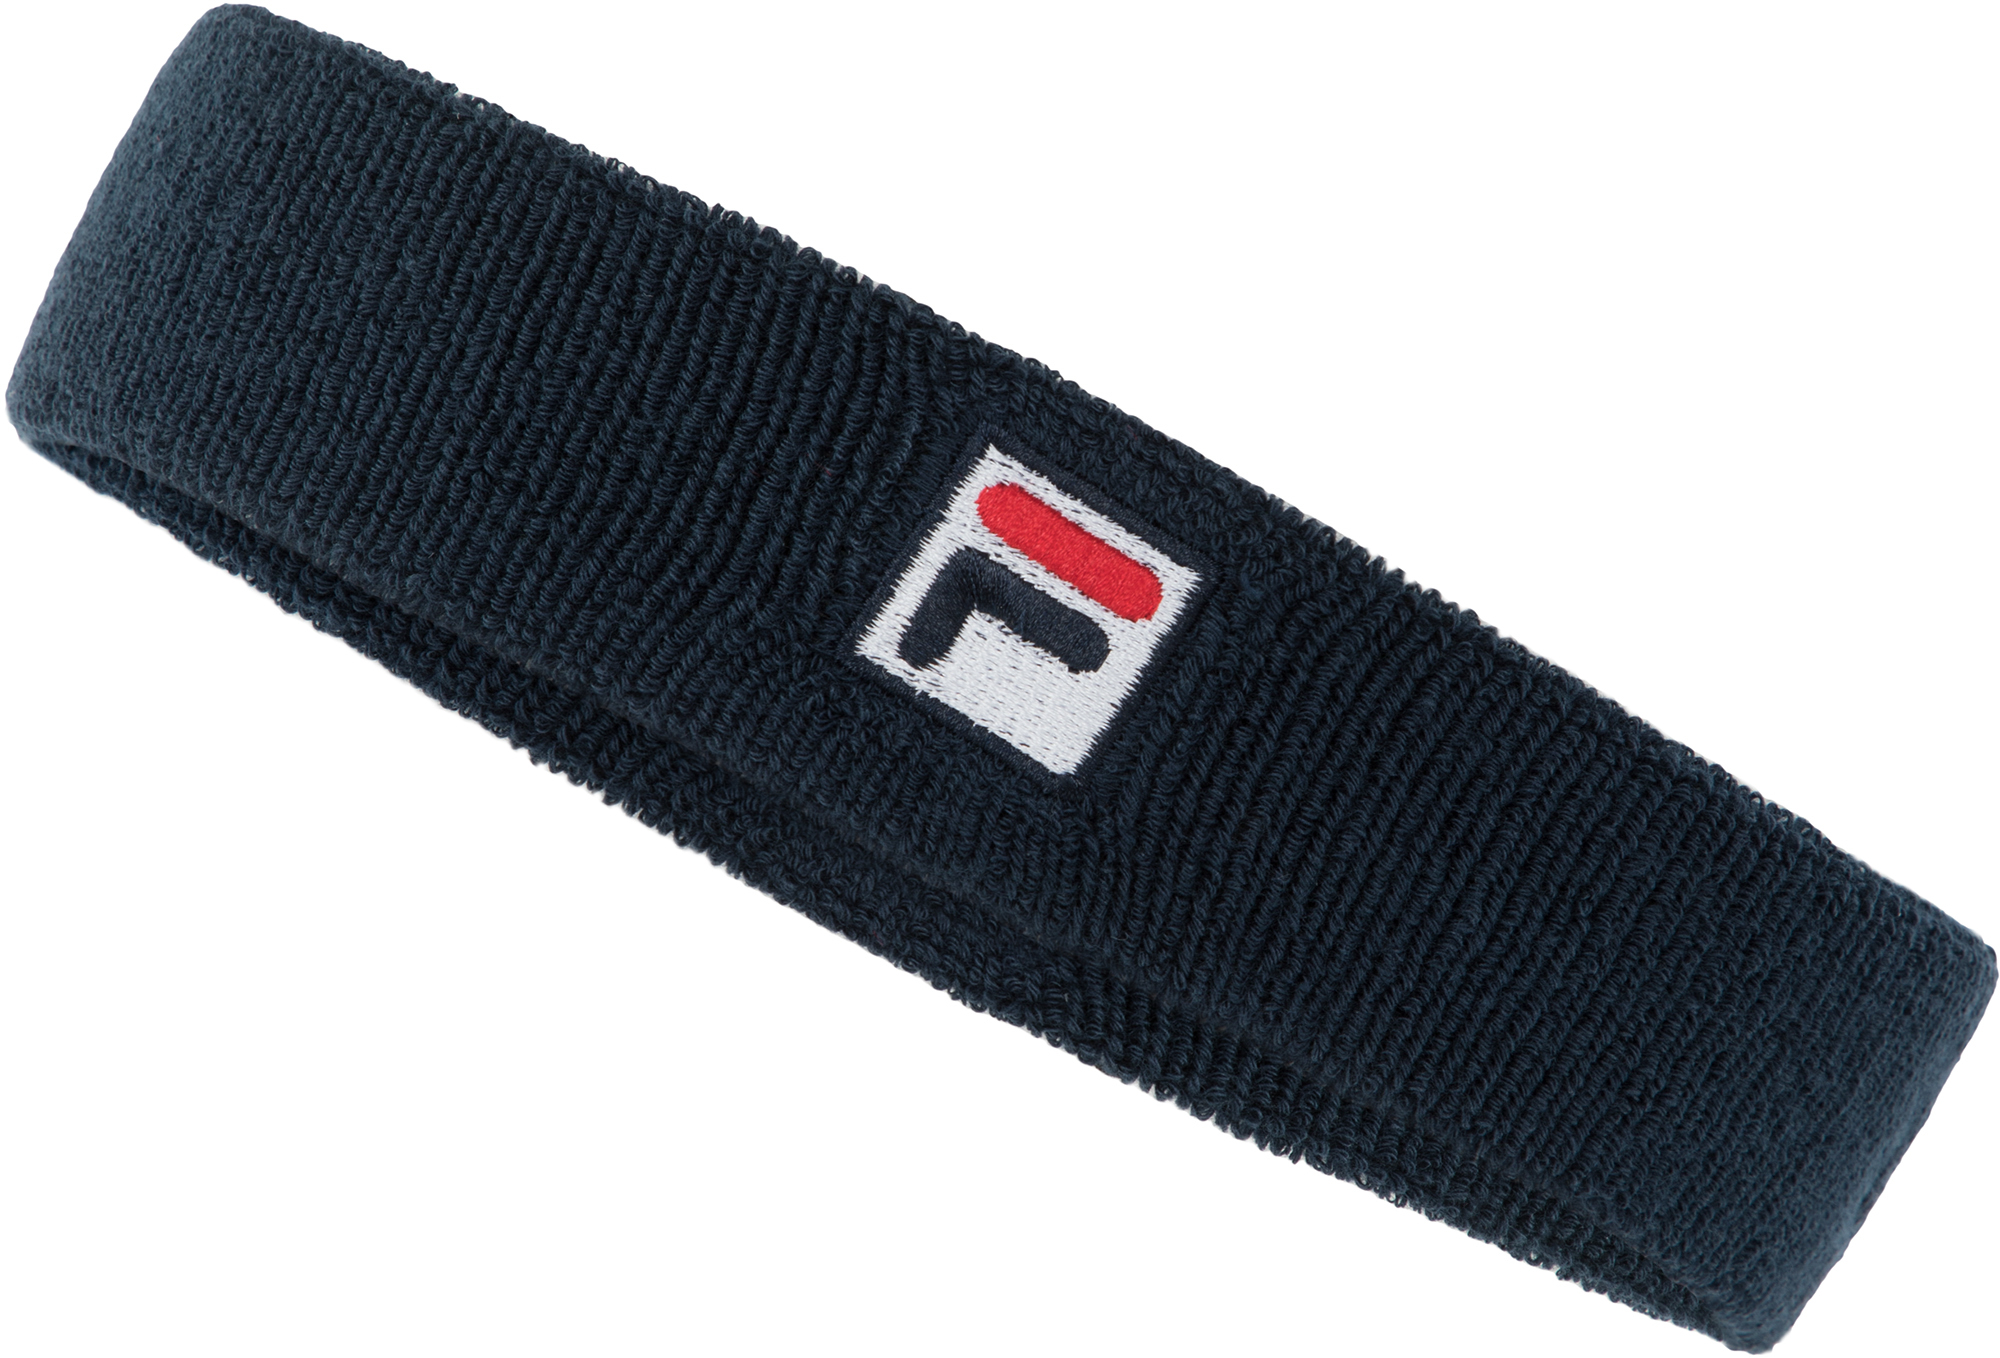 сумка спортивная fila coated bag s19aflacu01 m1 синий FILA Повязка FILA